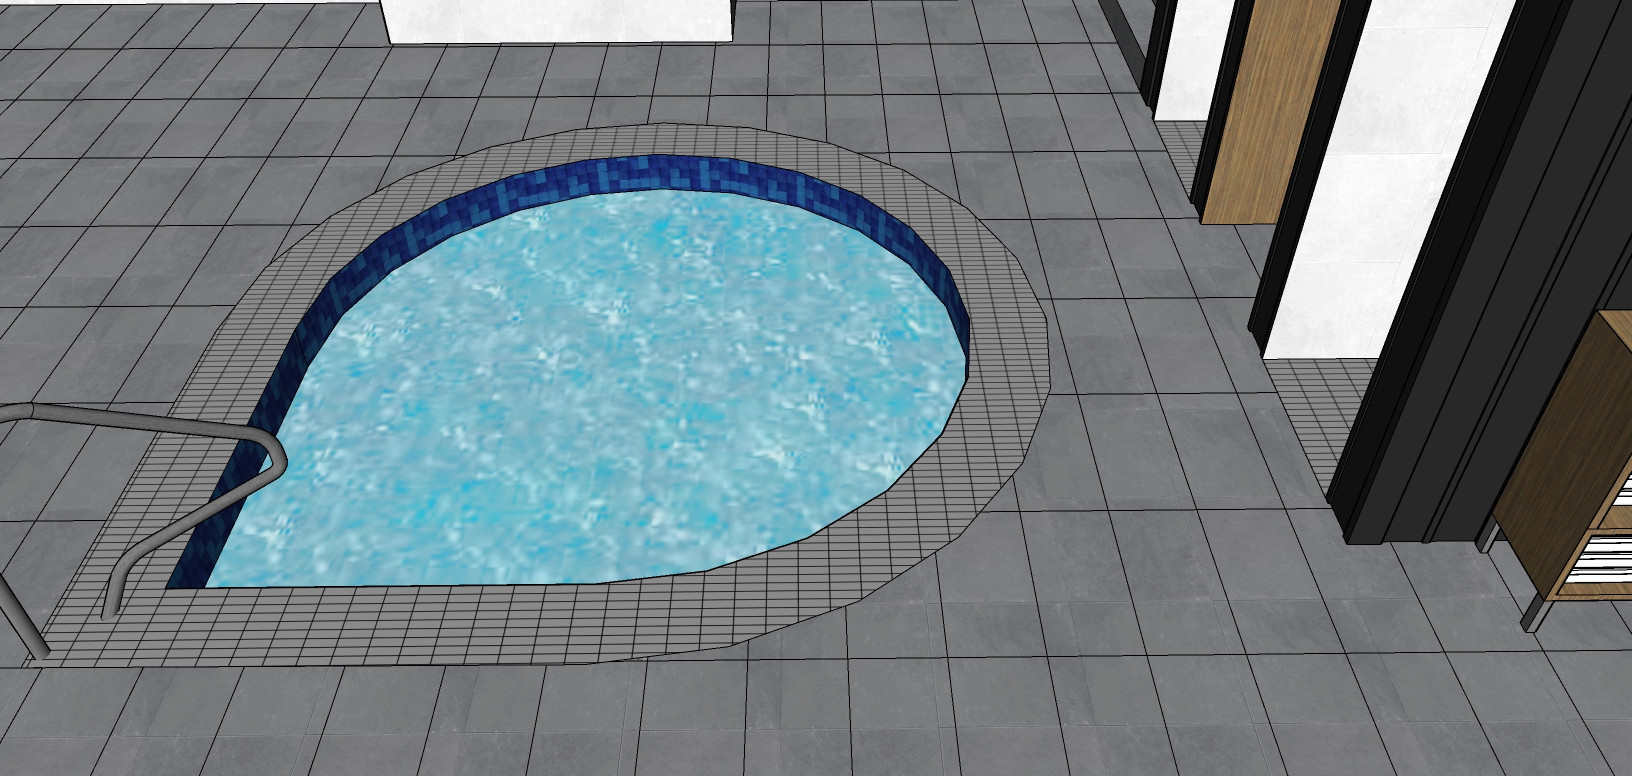 Indoor Pool Design 2 - View 11.jpg